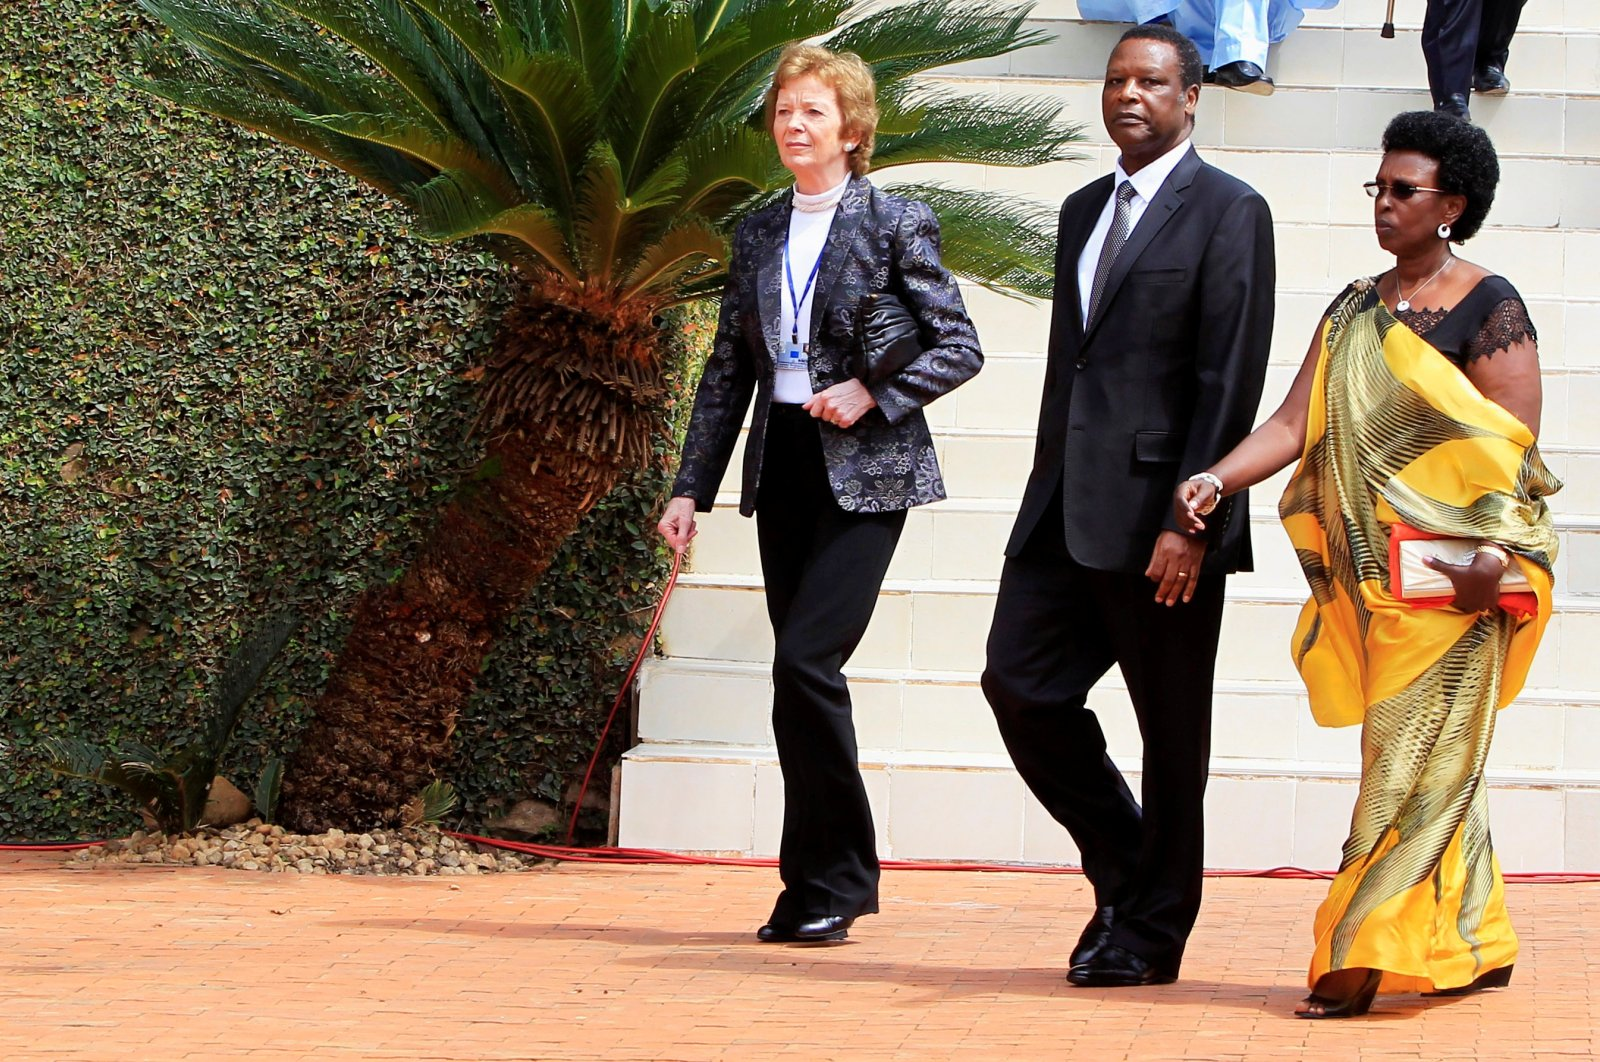 Former Irish president Mary Robinson (L), former Burundian President Pierre Buyoya (C) and his wife Sophie Buyoya arrive at Rwanda's genocide memorial center for a commemoration ceremony, in Kigali, Rwanda, April 7, 2014. (Reuters Photo)